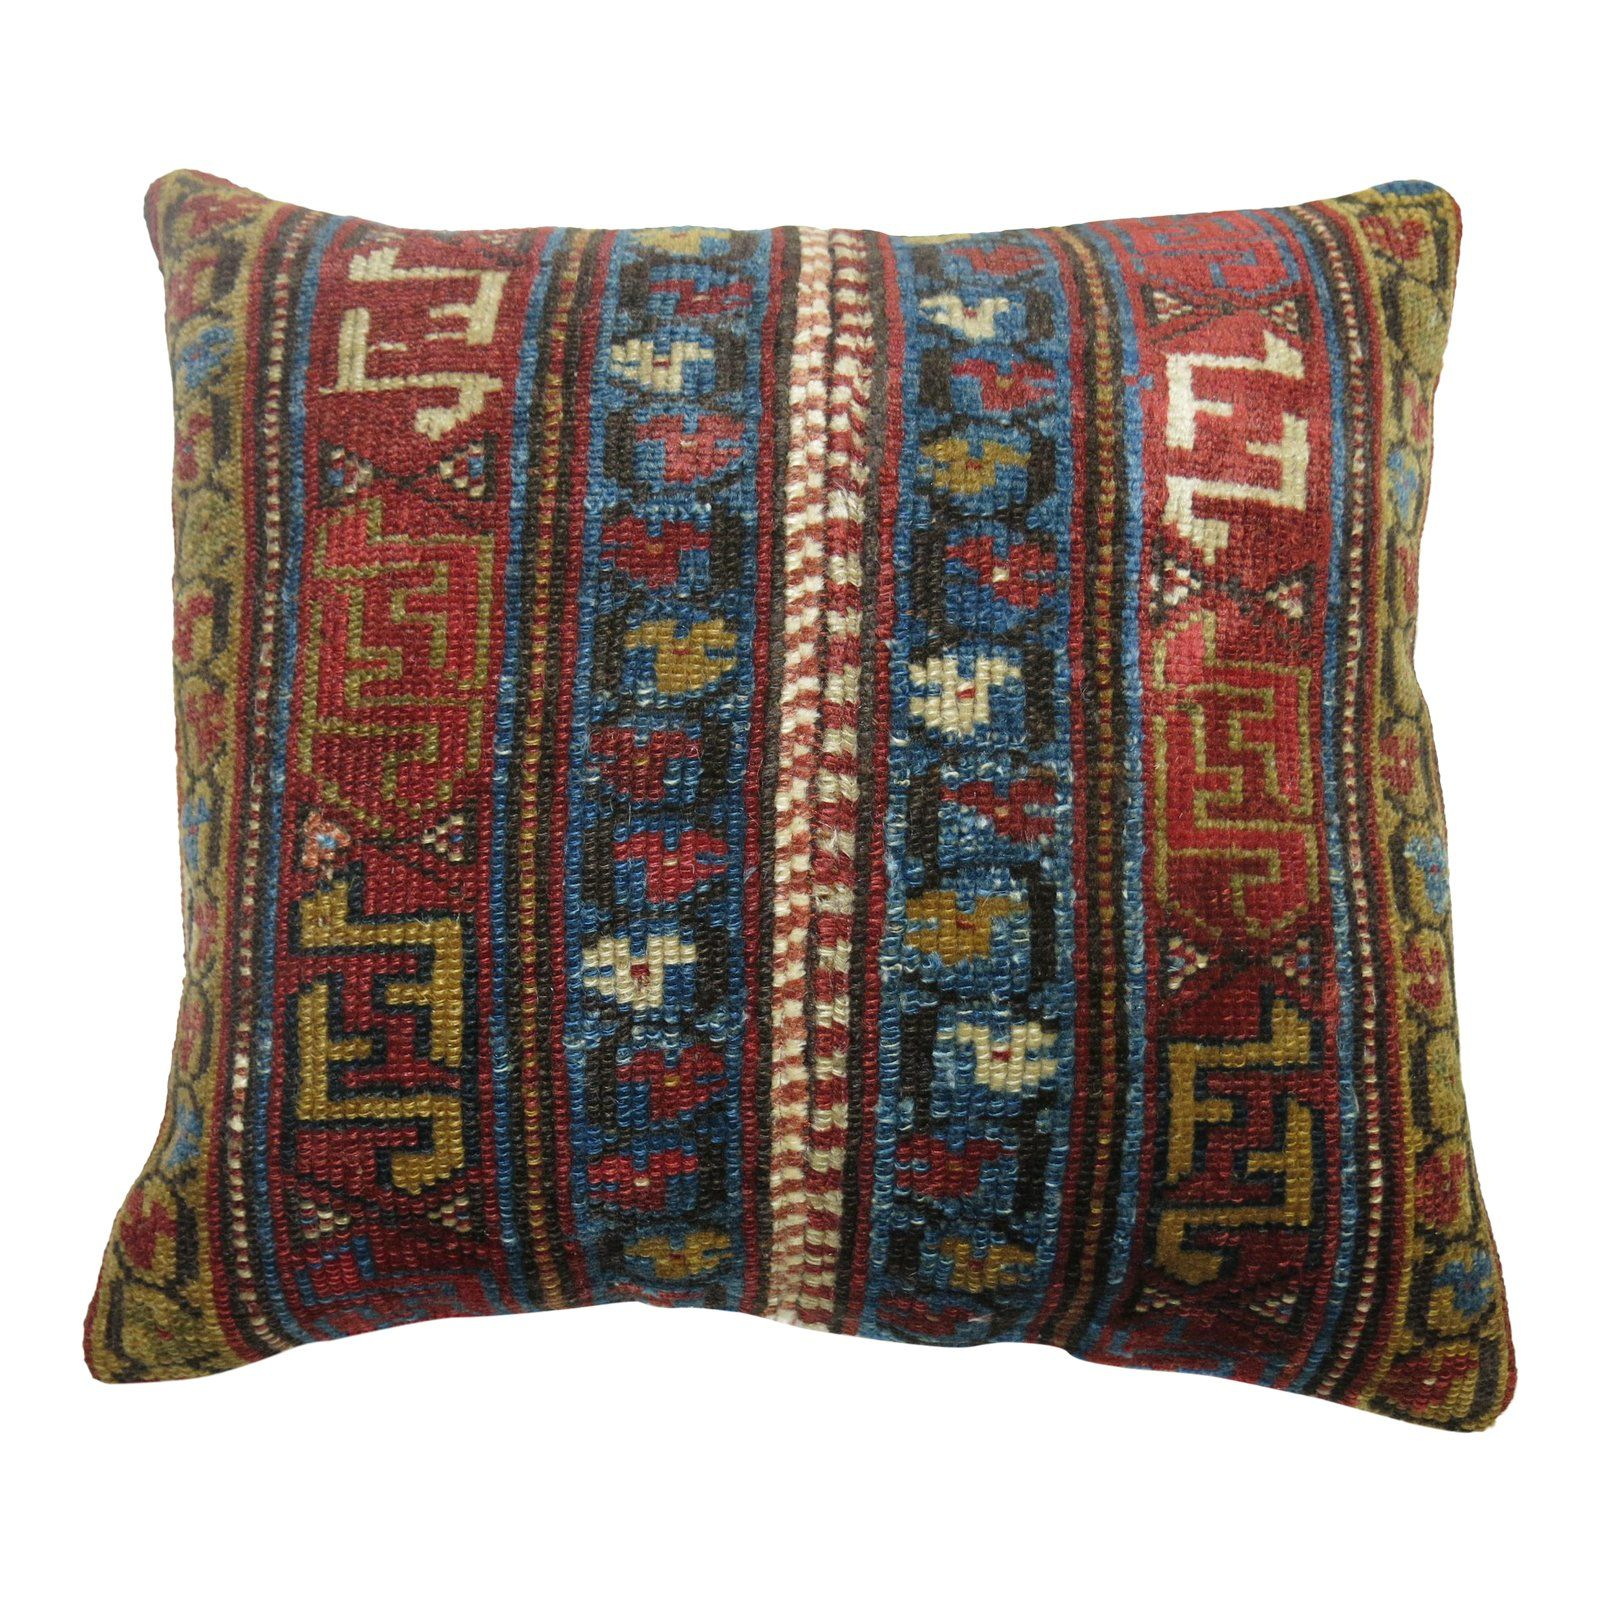 Antique Persian Rug Throw Pillow